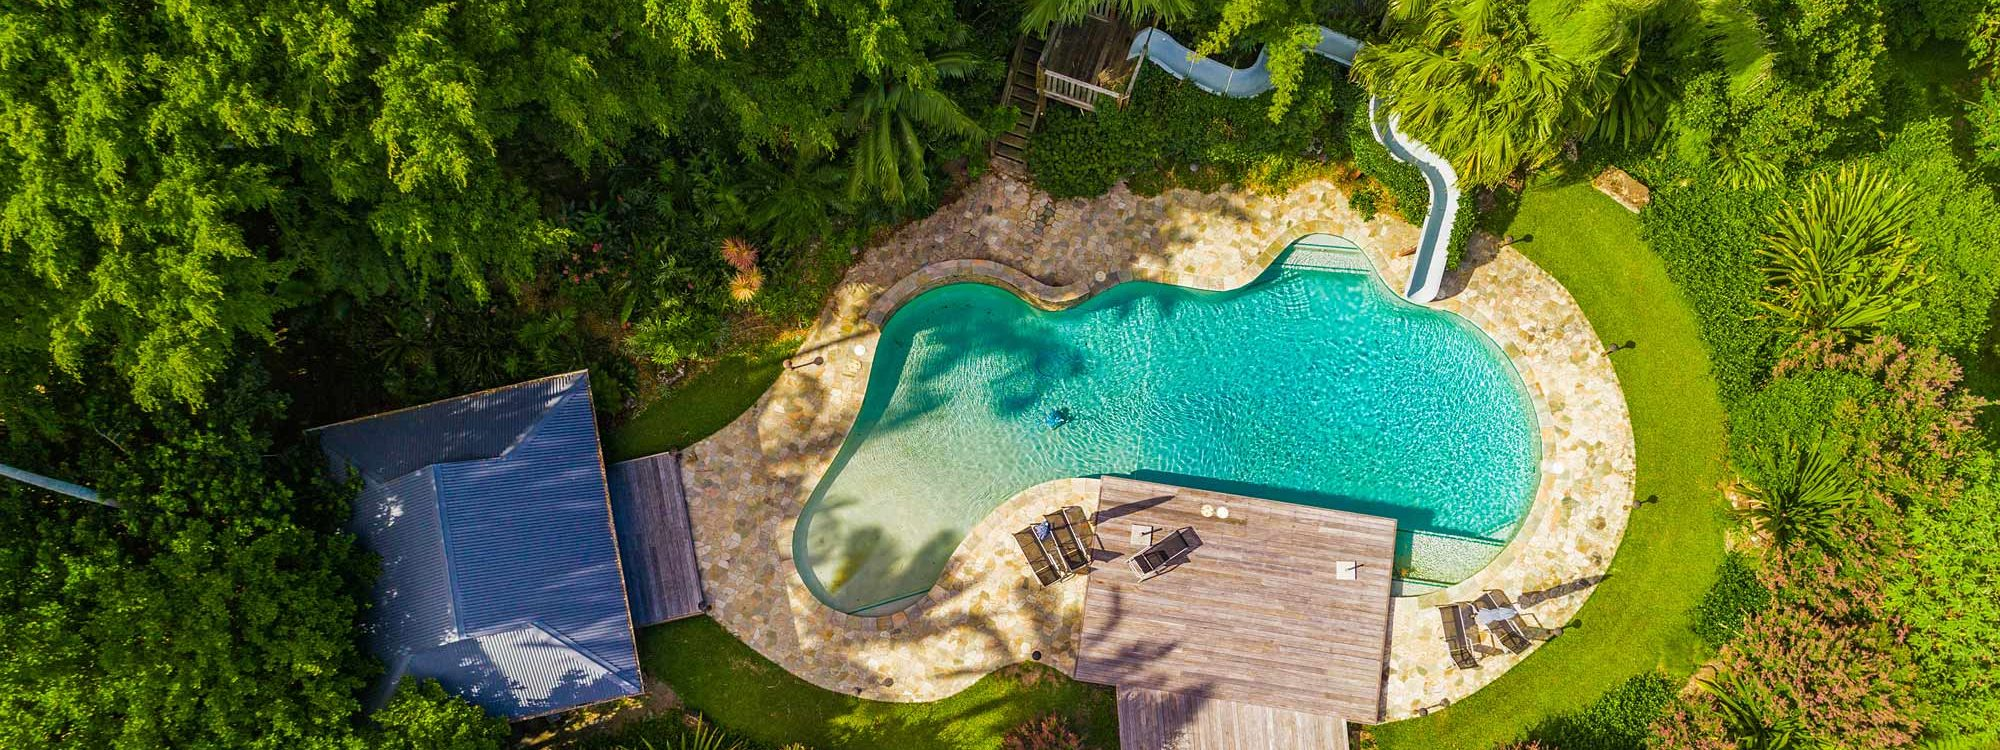 Stone and Grove - Byron Bay - Ewingsdale - aerial view of house and pool